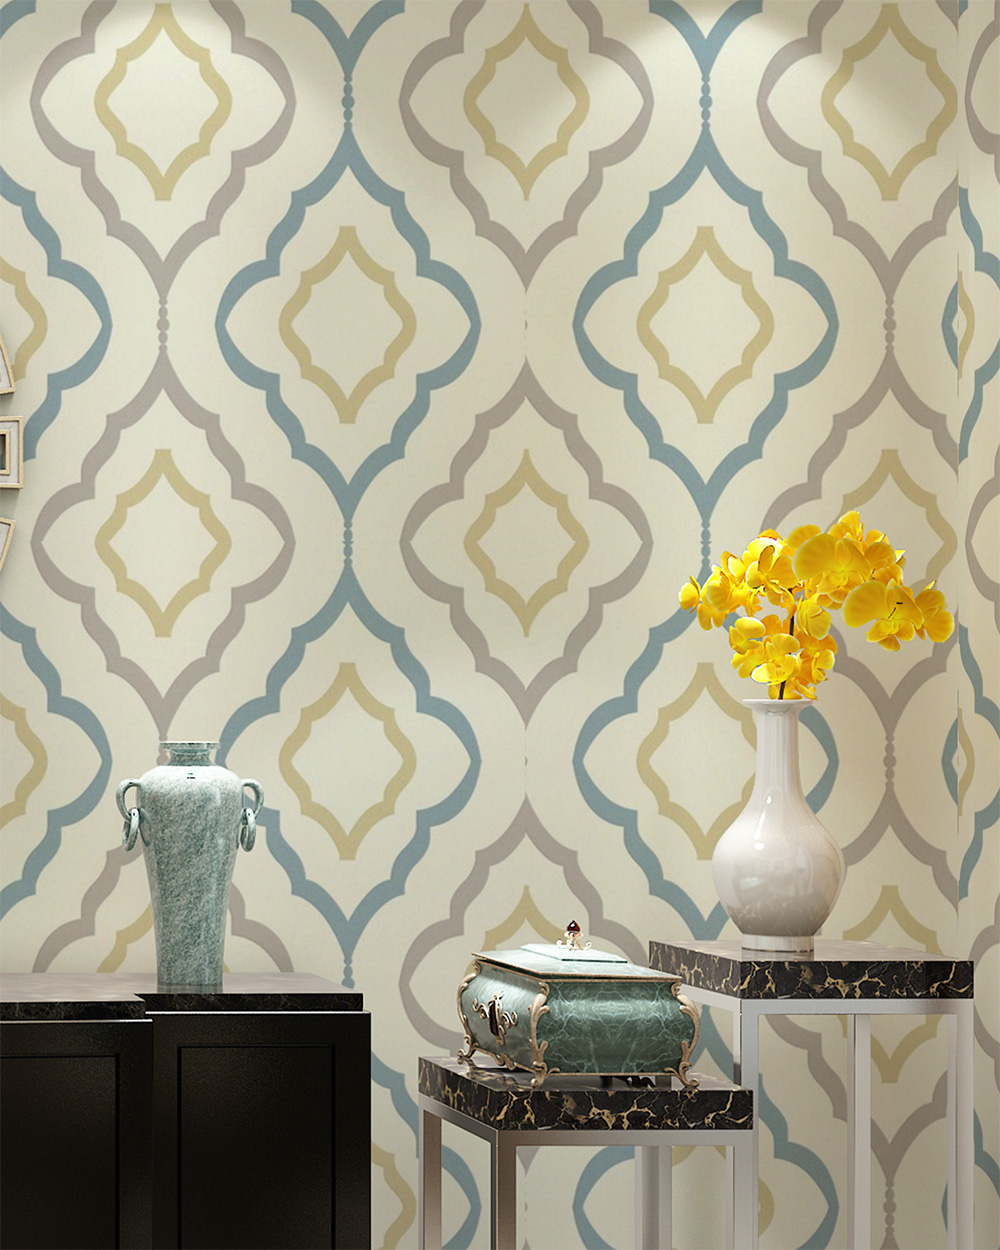 Popular Wallpaper Roll-Buy Cheap Wallpaper Roll lots from China Wallpaper Roll suppliers on ...